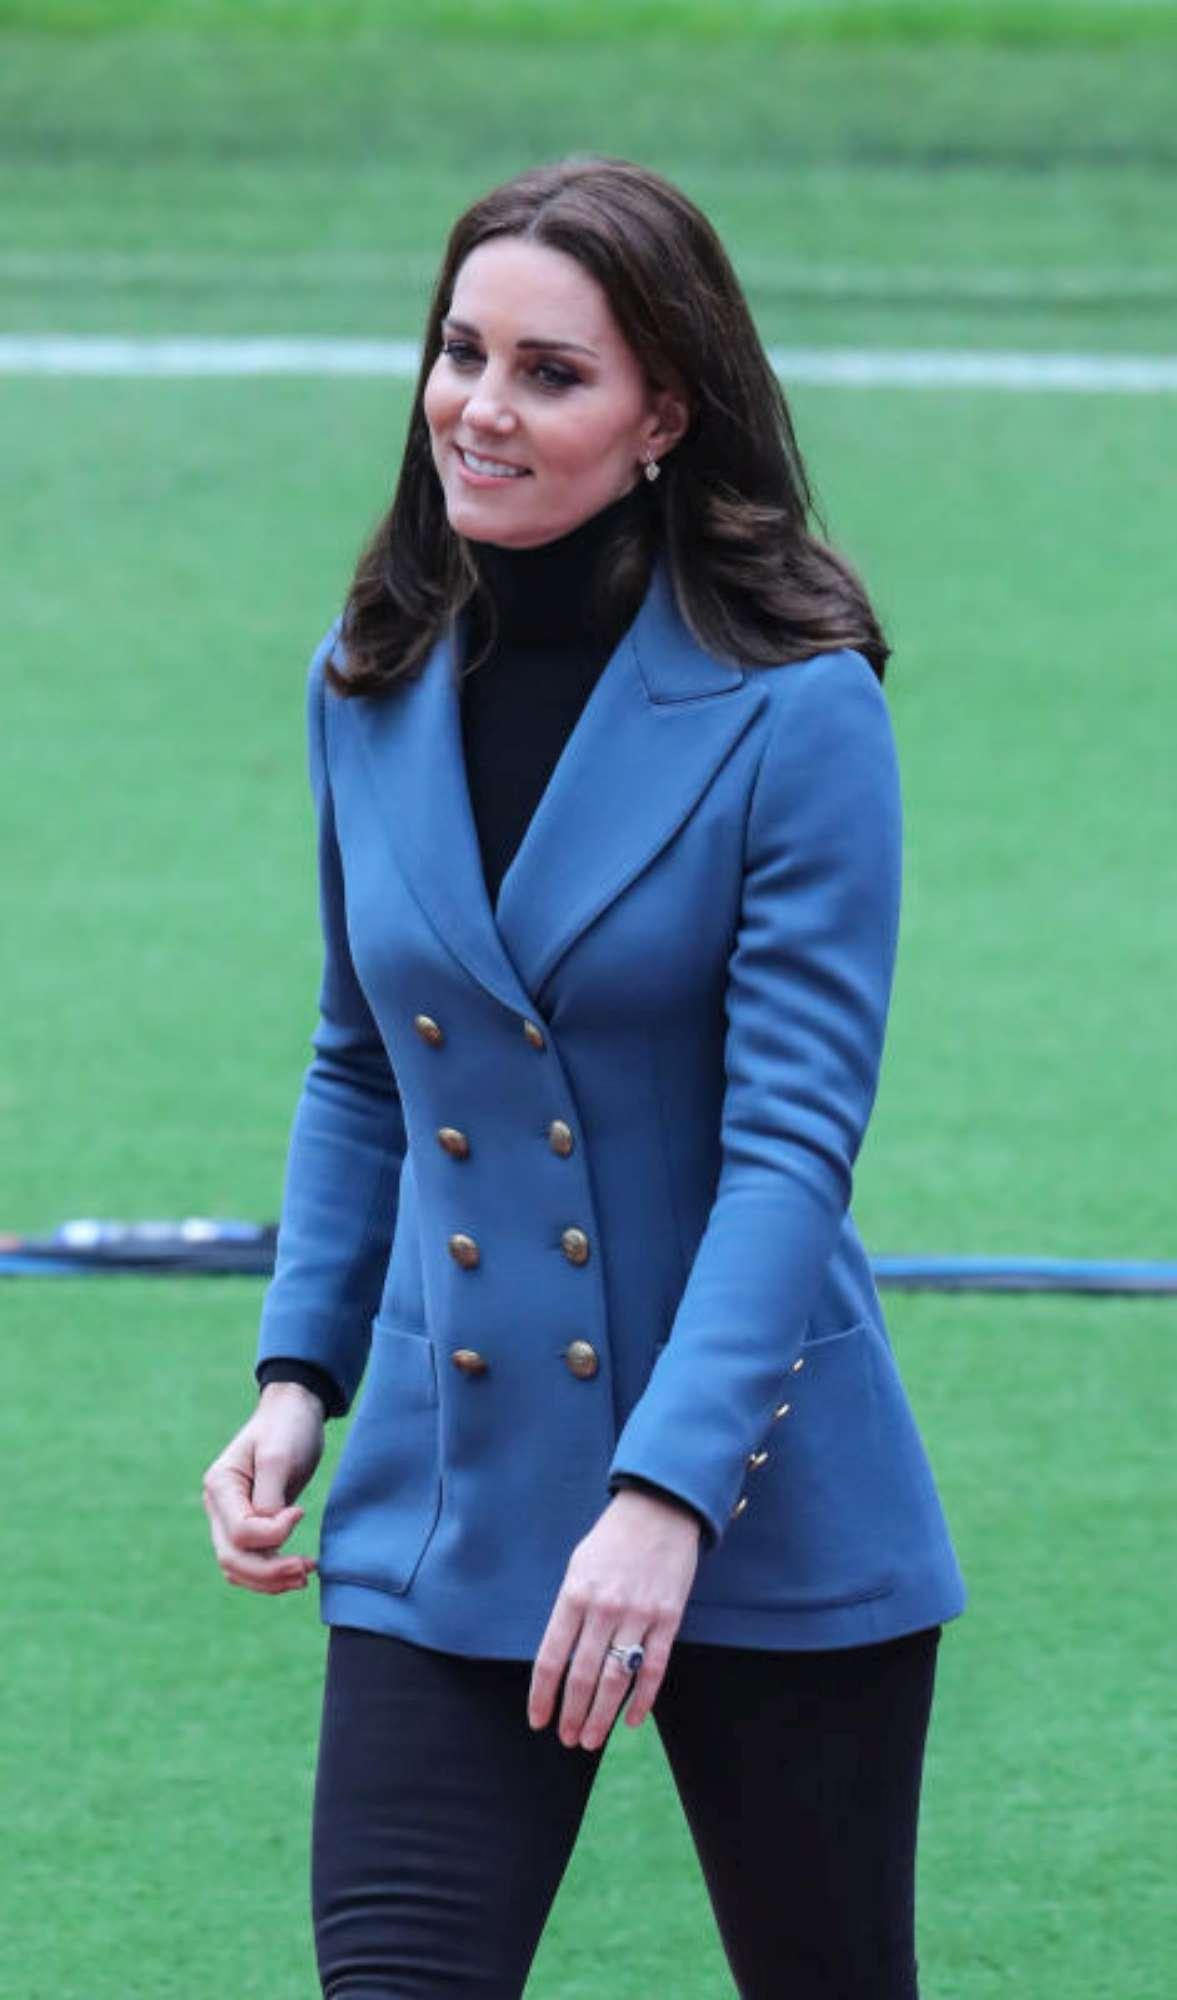 Che pancione regale! Guarda tutti i look premaman di Kate Middleton